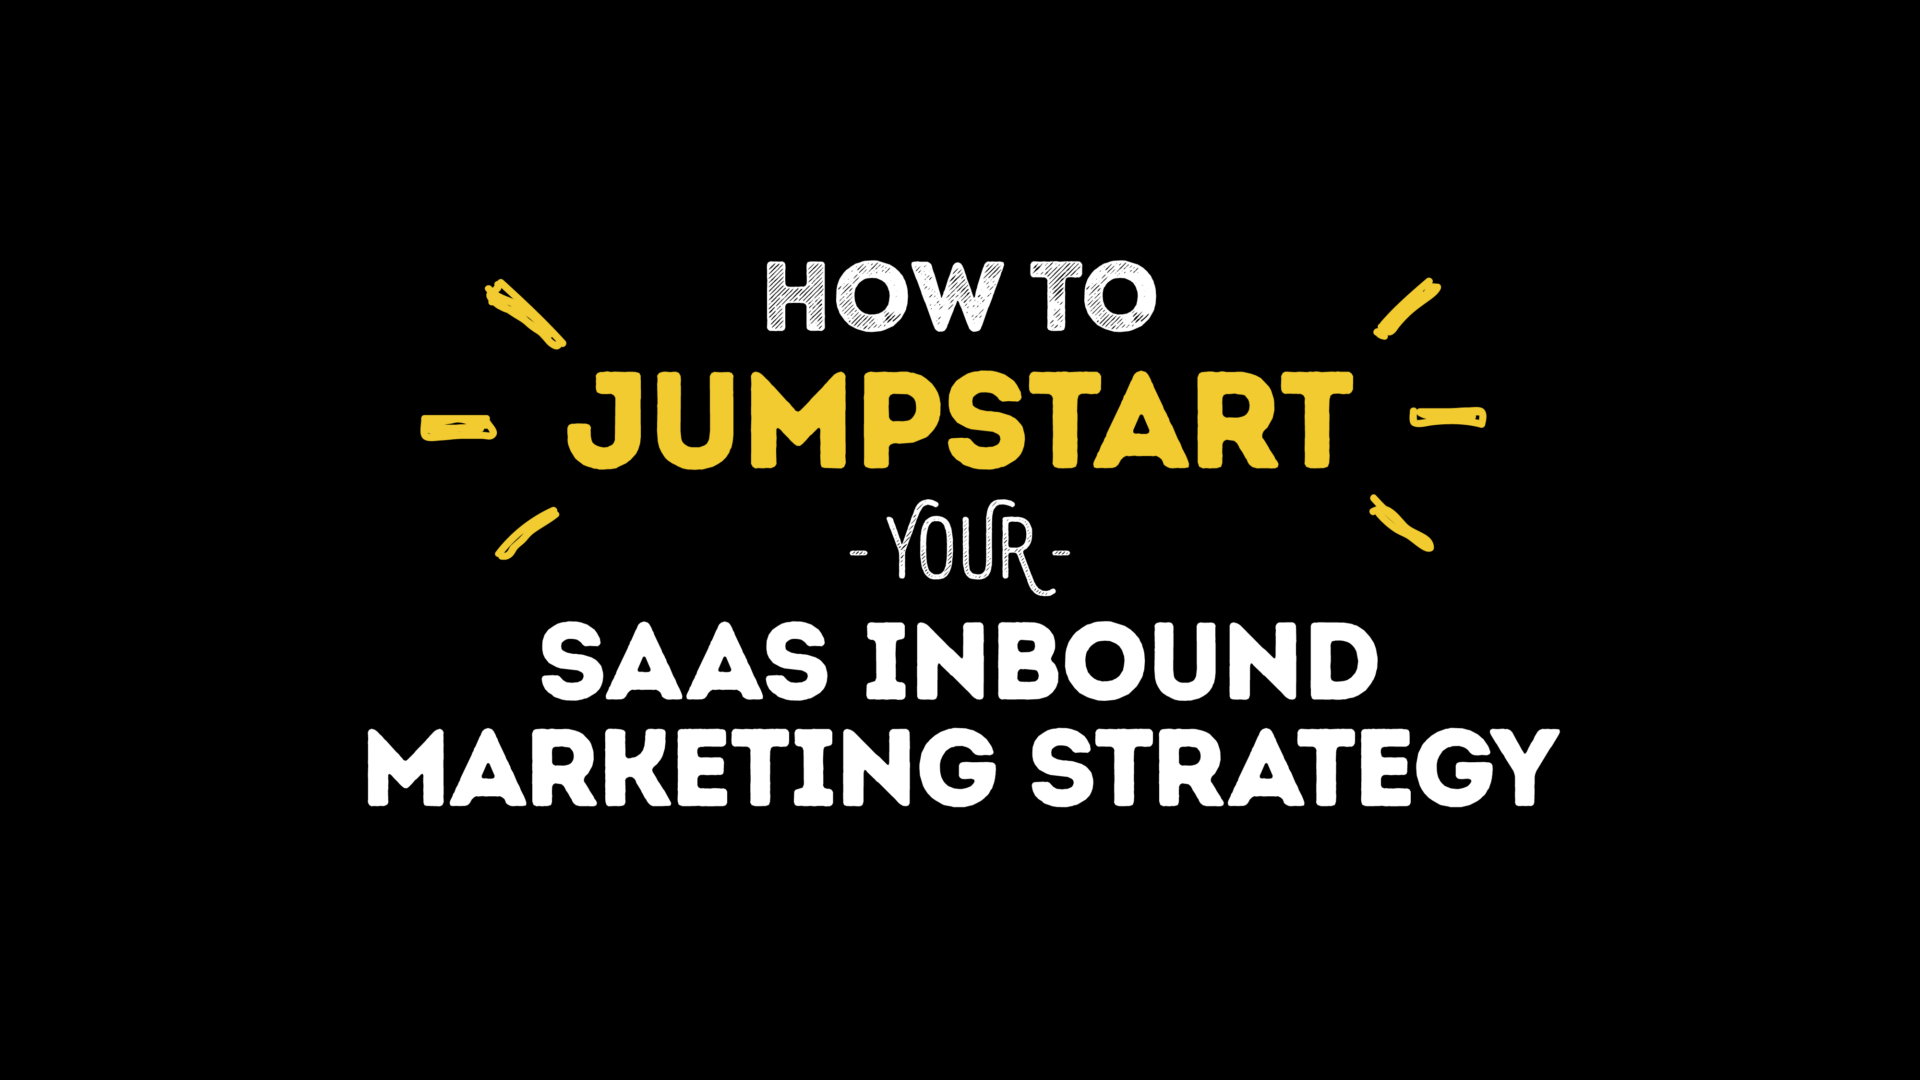 How to Jumpstart Your SaaS Inbound Marketing Strategy